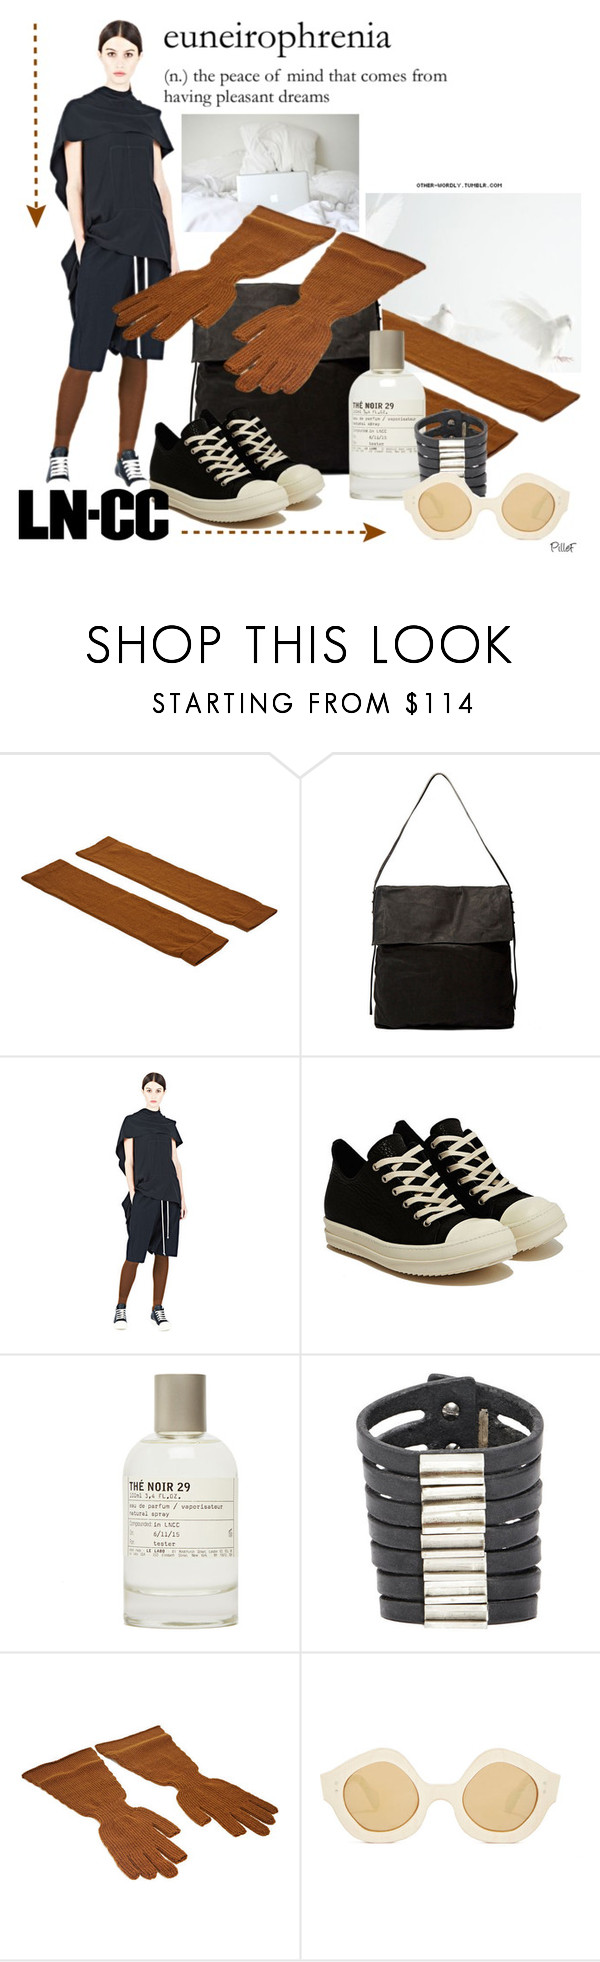 """""""✴︎ LN-CC ✴︎"""" by pillef ❤ liked on Polyvore featuring Rick Owens, Karl Lagerfeld and Maison Margiela"""